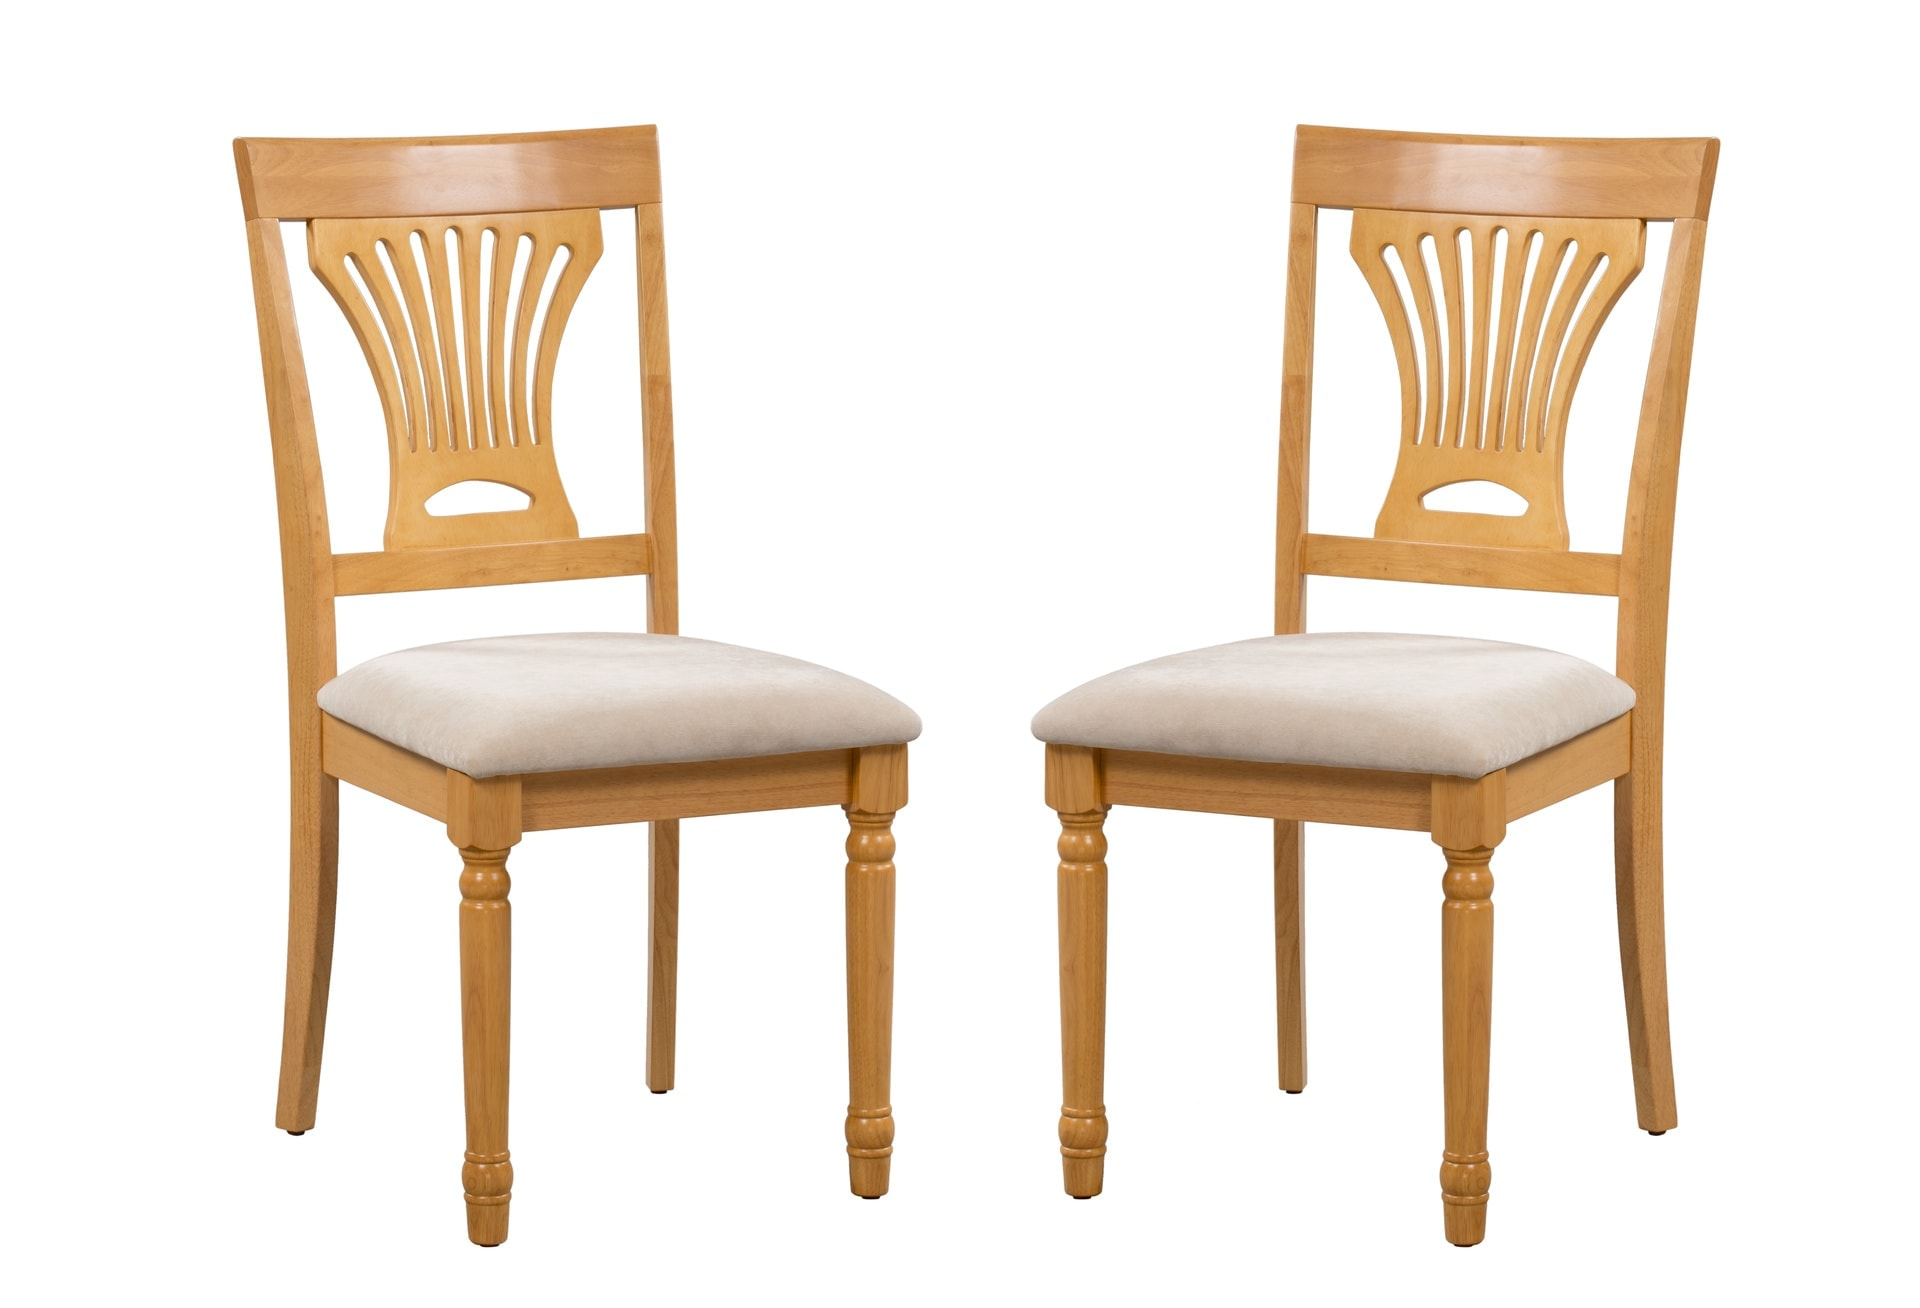 strong dining room chairs | Chair, upholstered, table, dining, dining set, sets, table ...